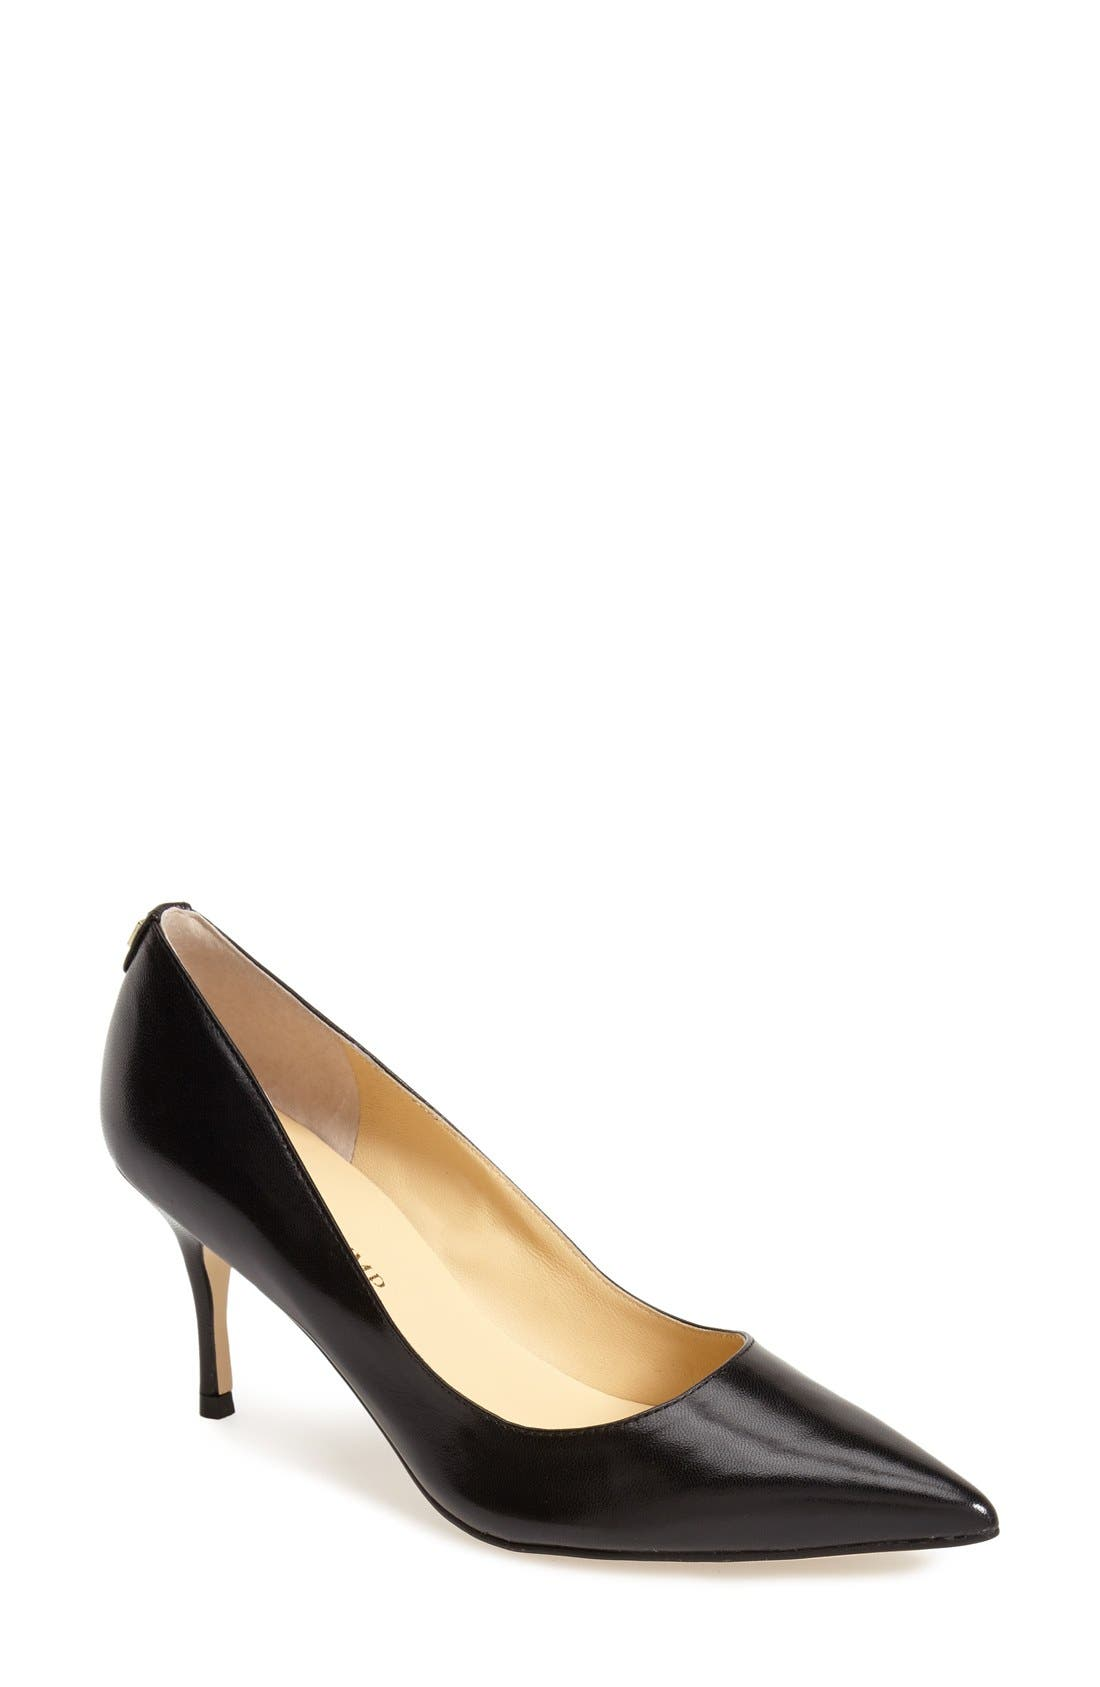 Main Image - Ivanka Trump 'Boni' Pointy Toe Pump (Women)